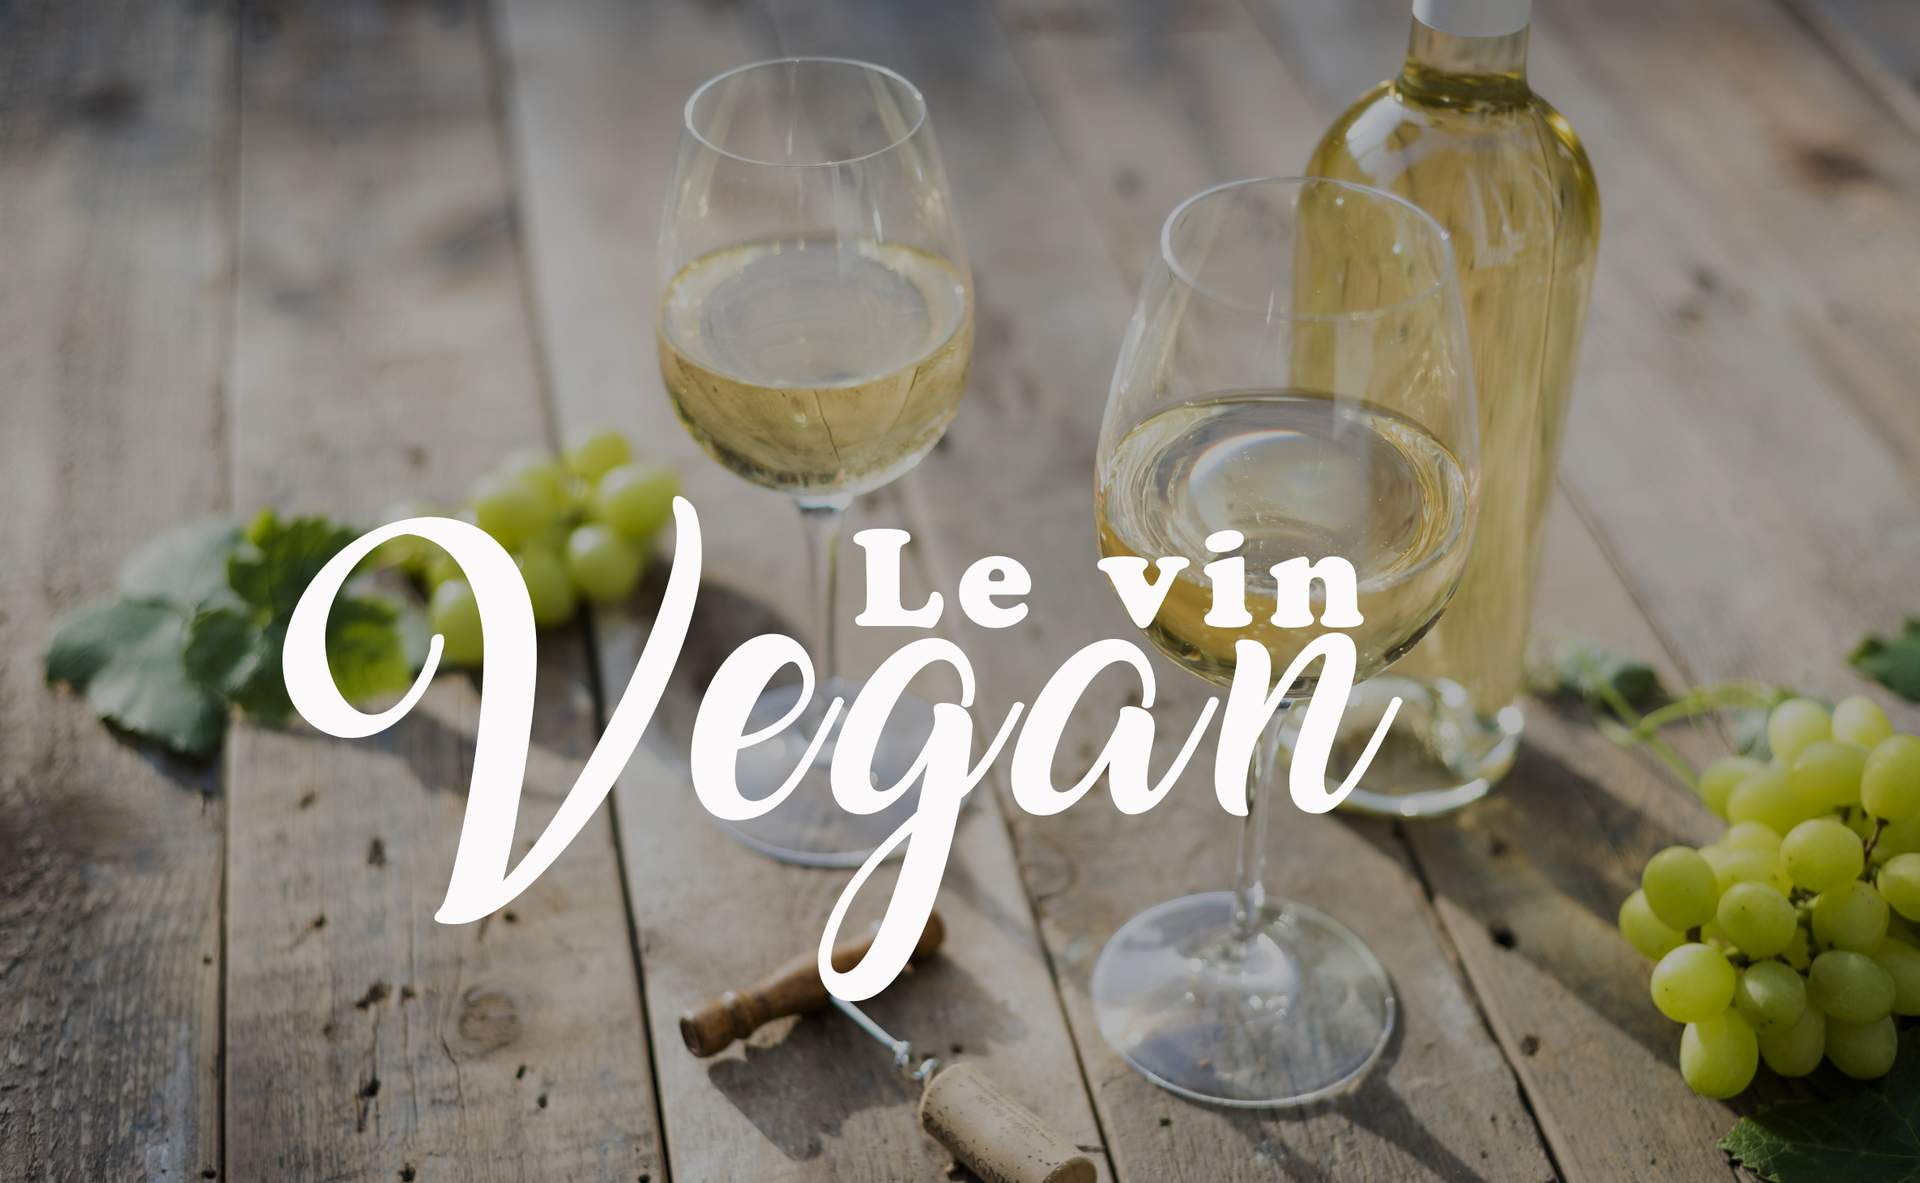 Le vin vegan : explications